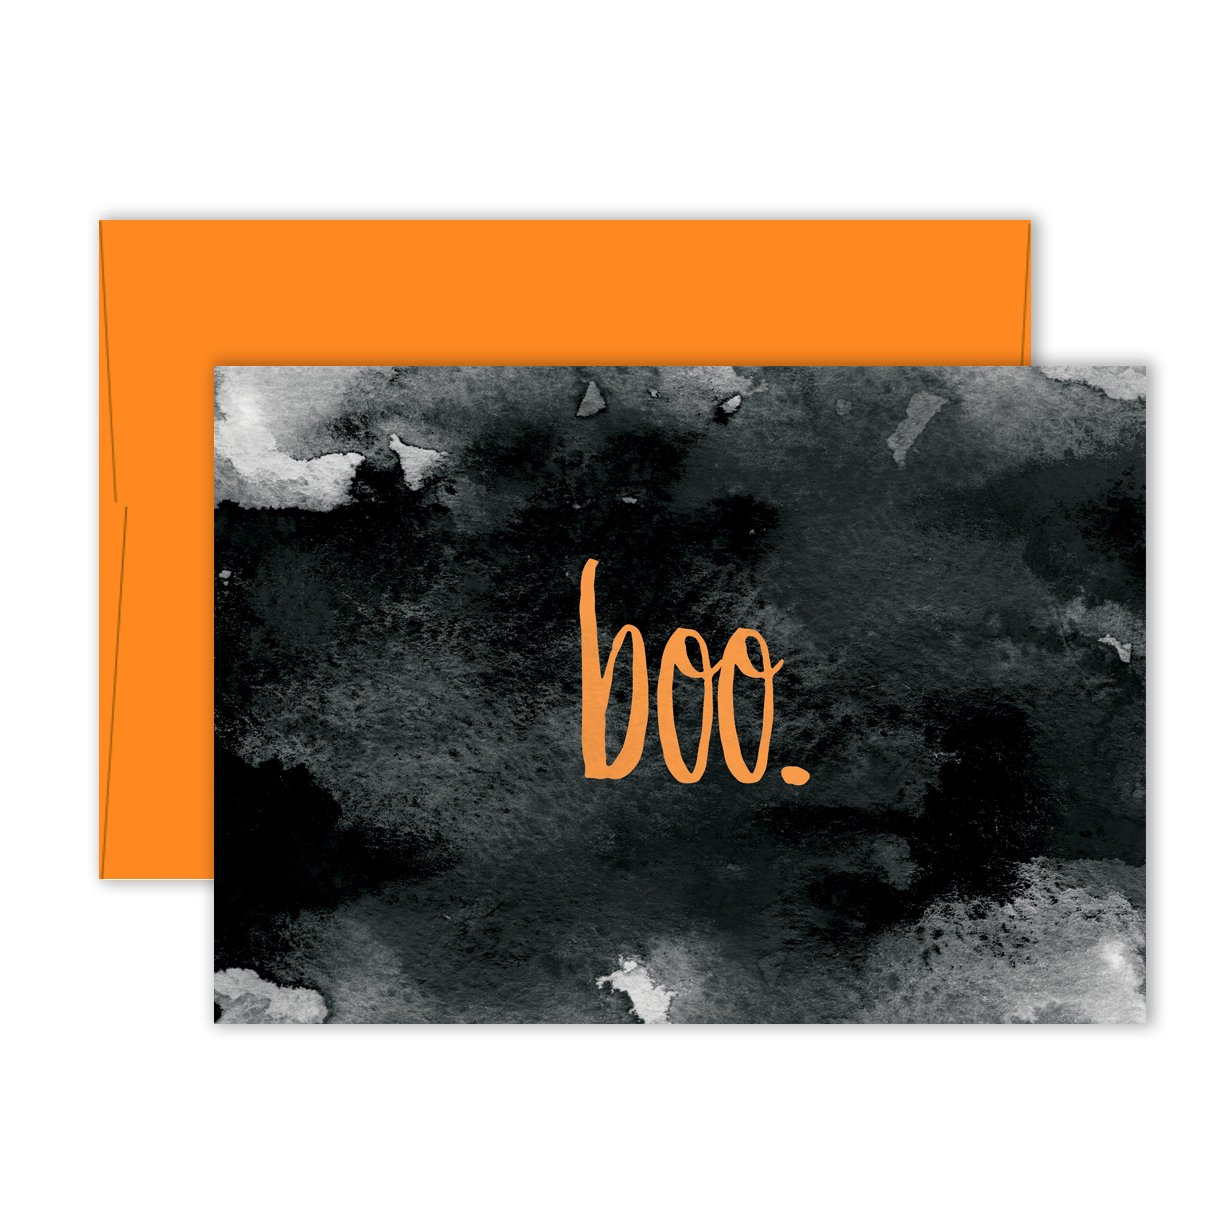 BOO Spooky Halloween Party Invitations Set of 12 Invitations 12 Orange Envelopes By Palmer Street Press